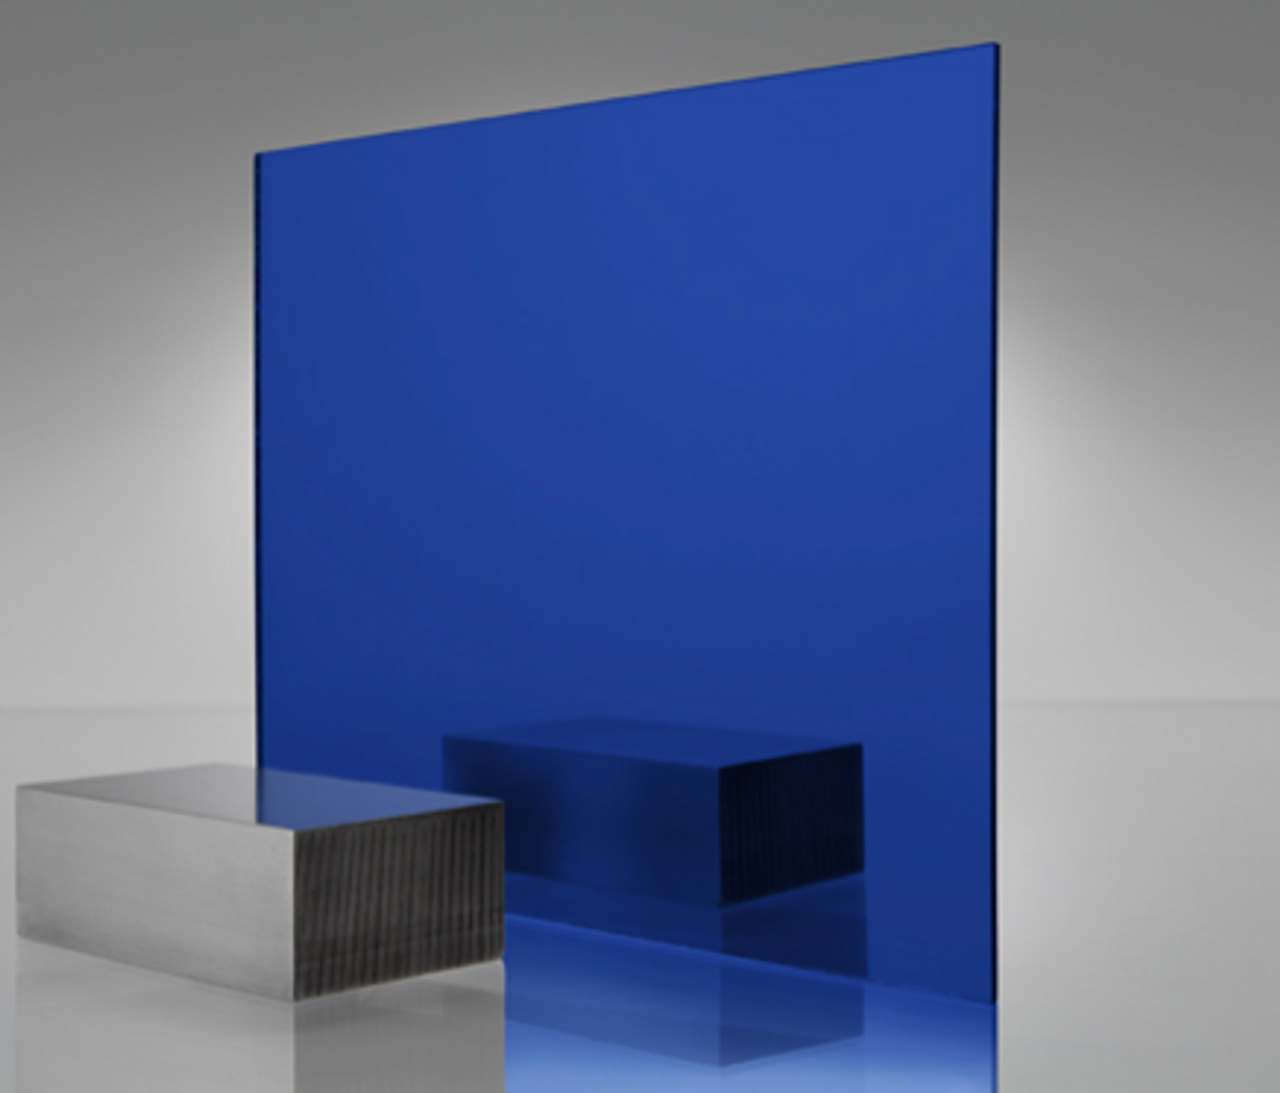 4x8' Mirrored Acrylic BLUE Darkx